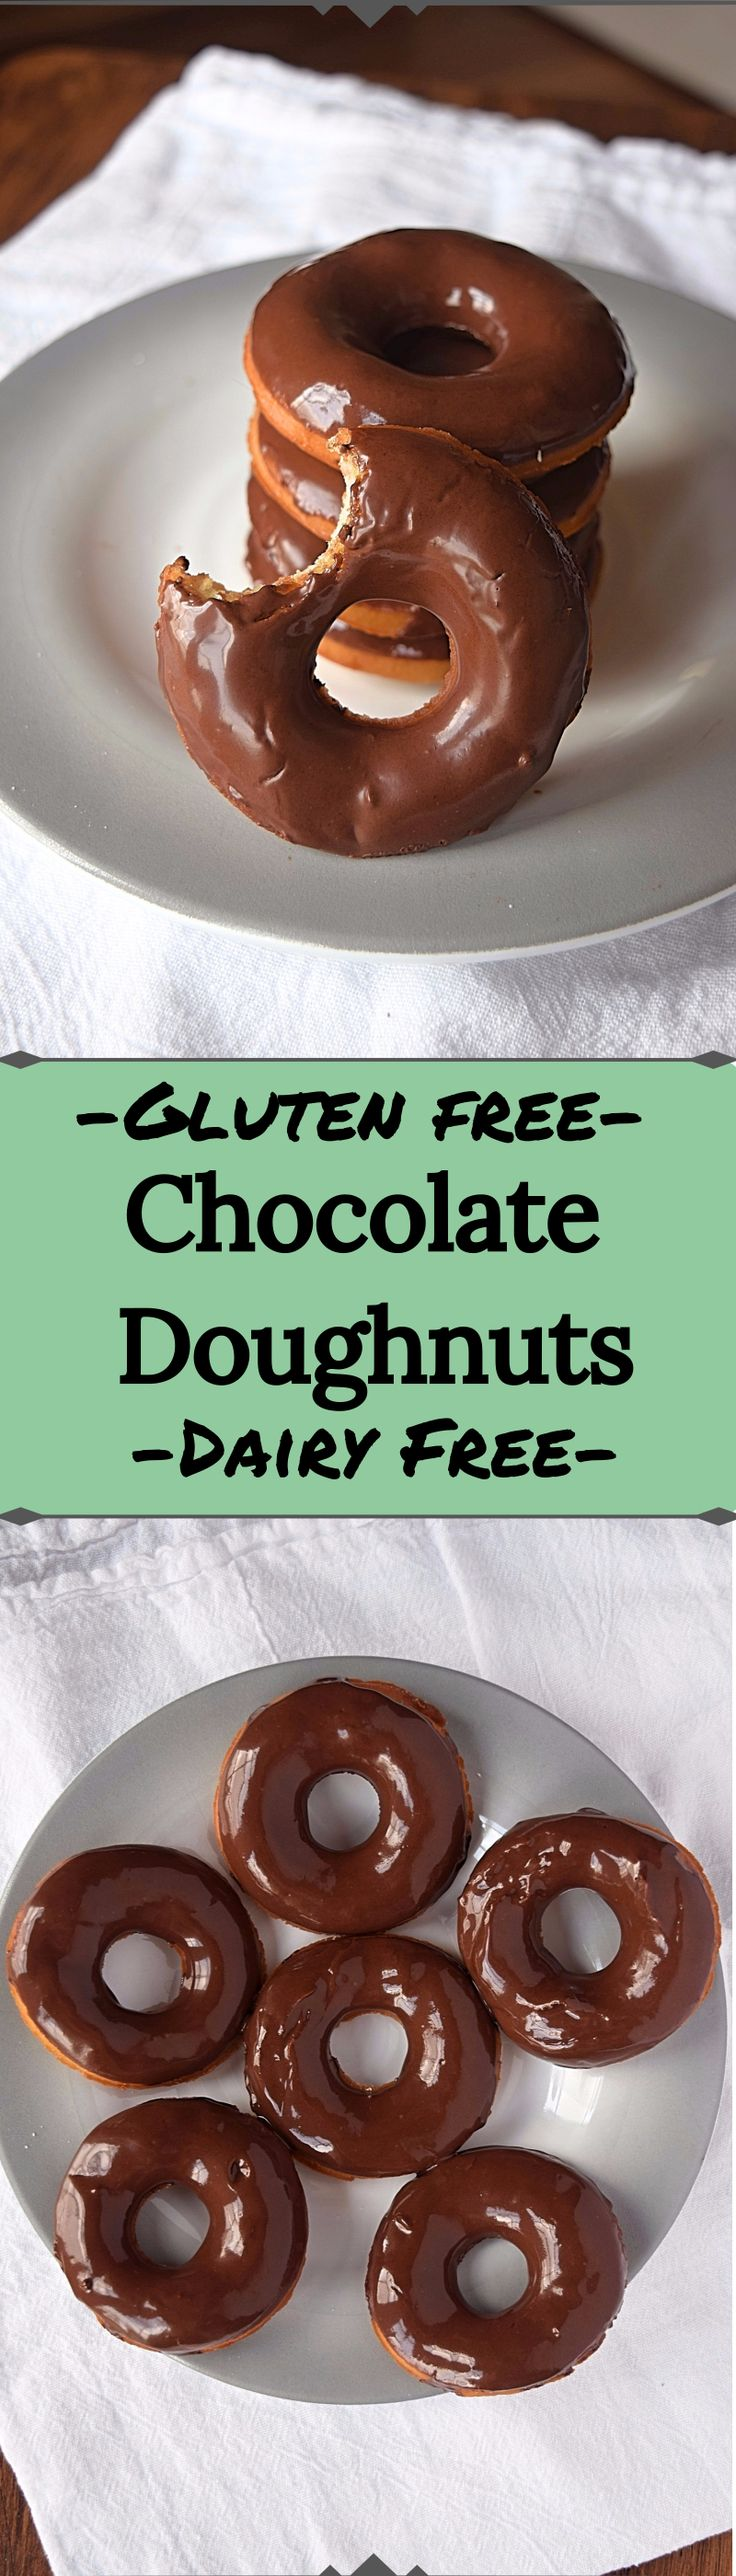 Gluten free Chocolate Doughnuts are everything you've been craving. Pillowy soft, yeasty, and topped with chocolate. This recipe is also dairy free for those on a further restricted diet. Treat yo' self, eat a doughnut.